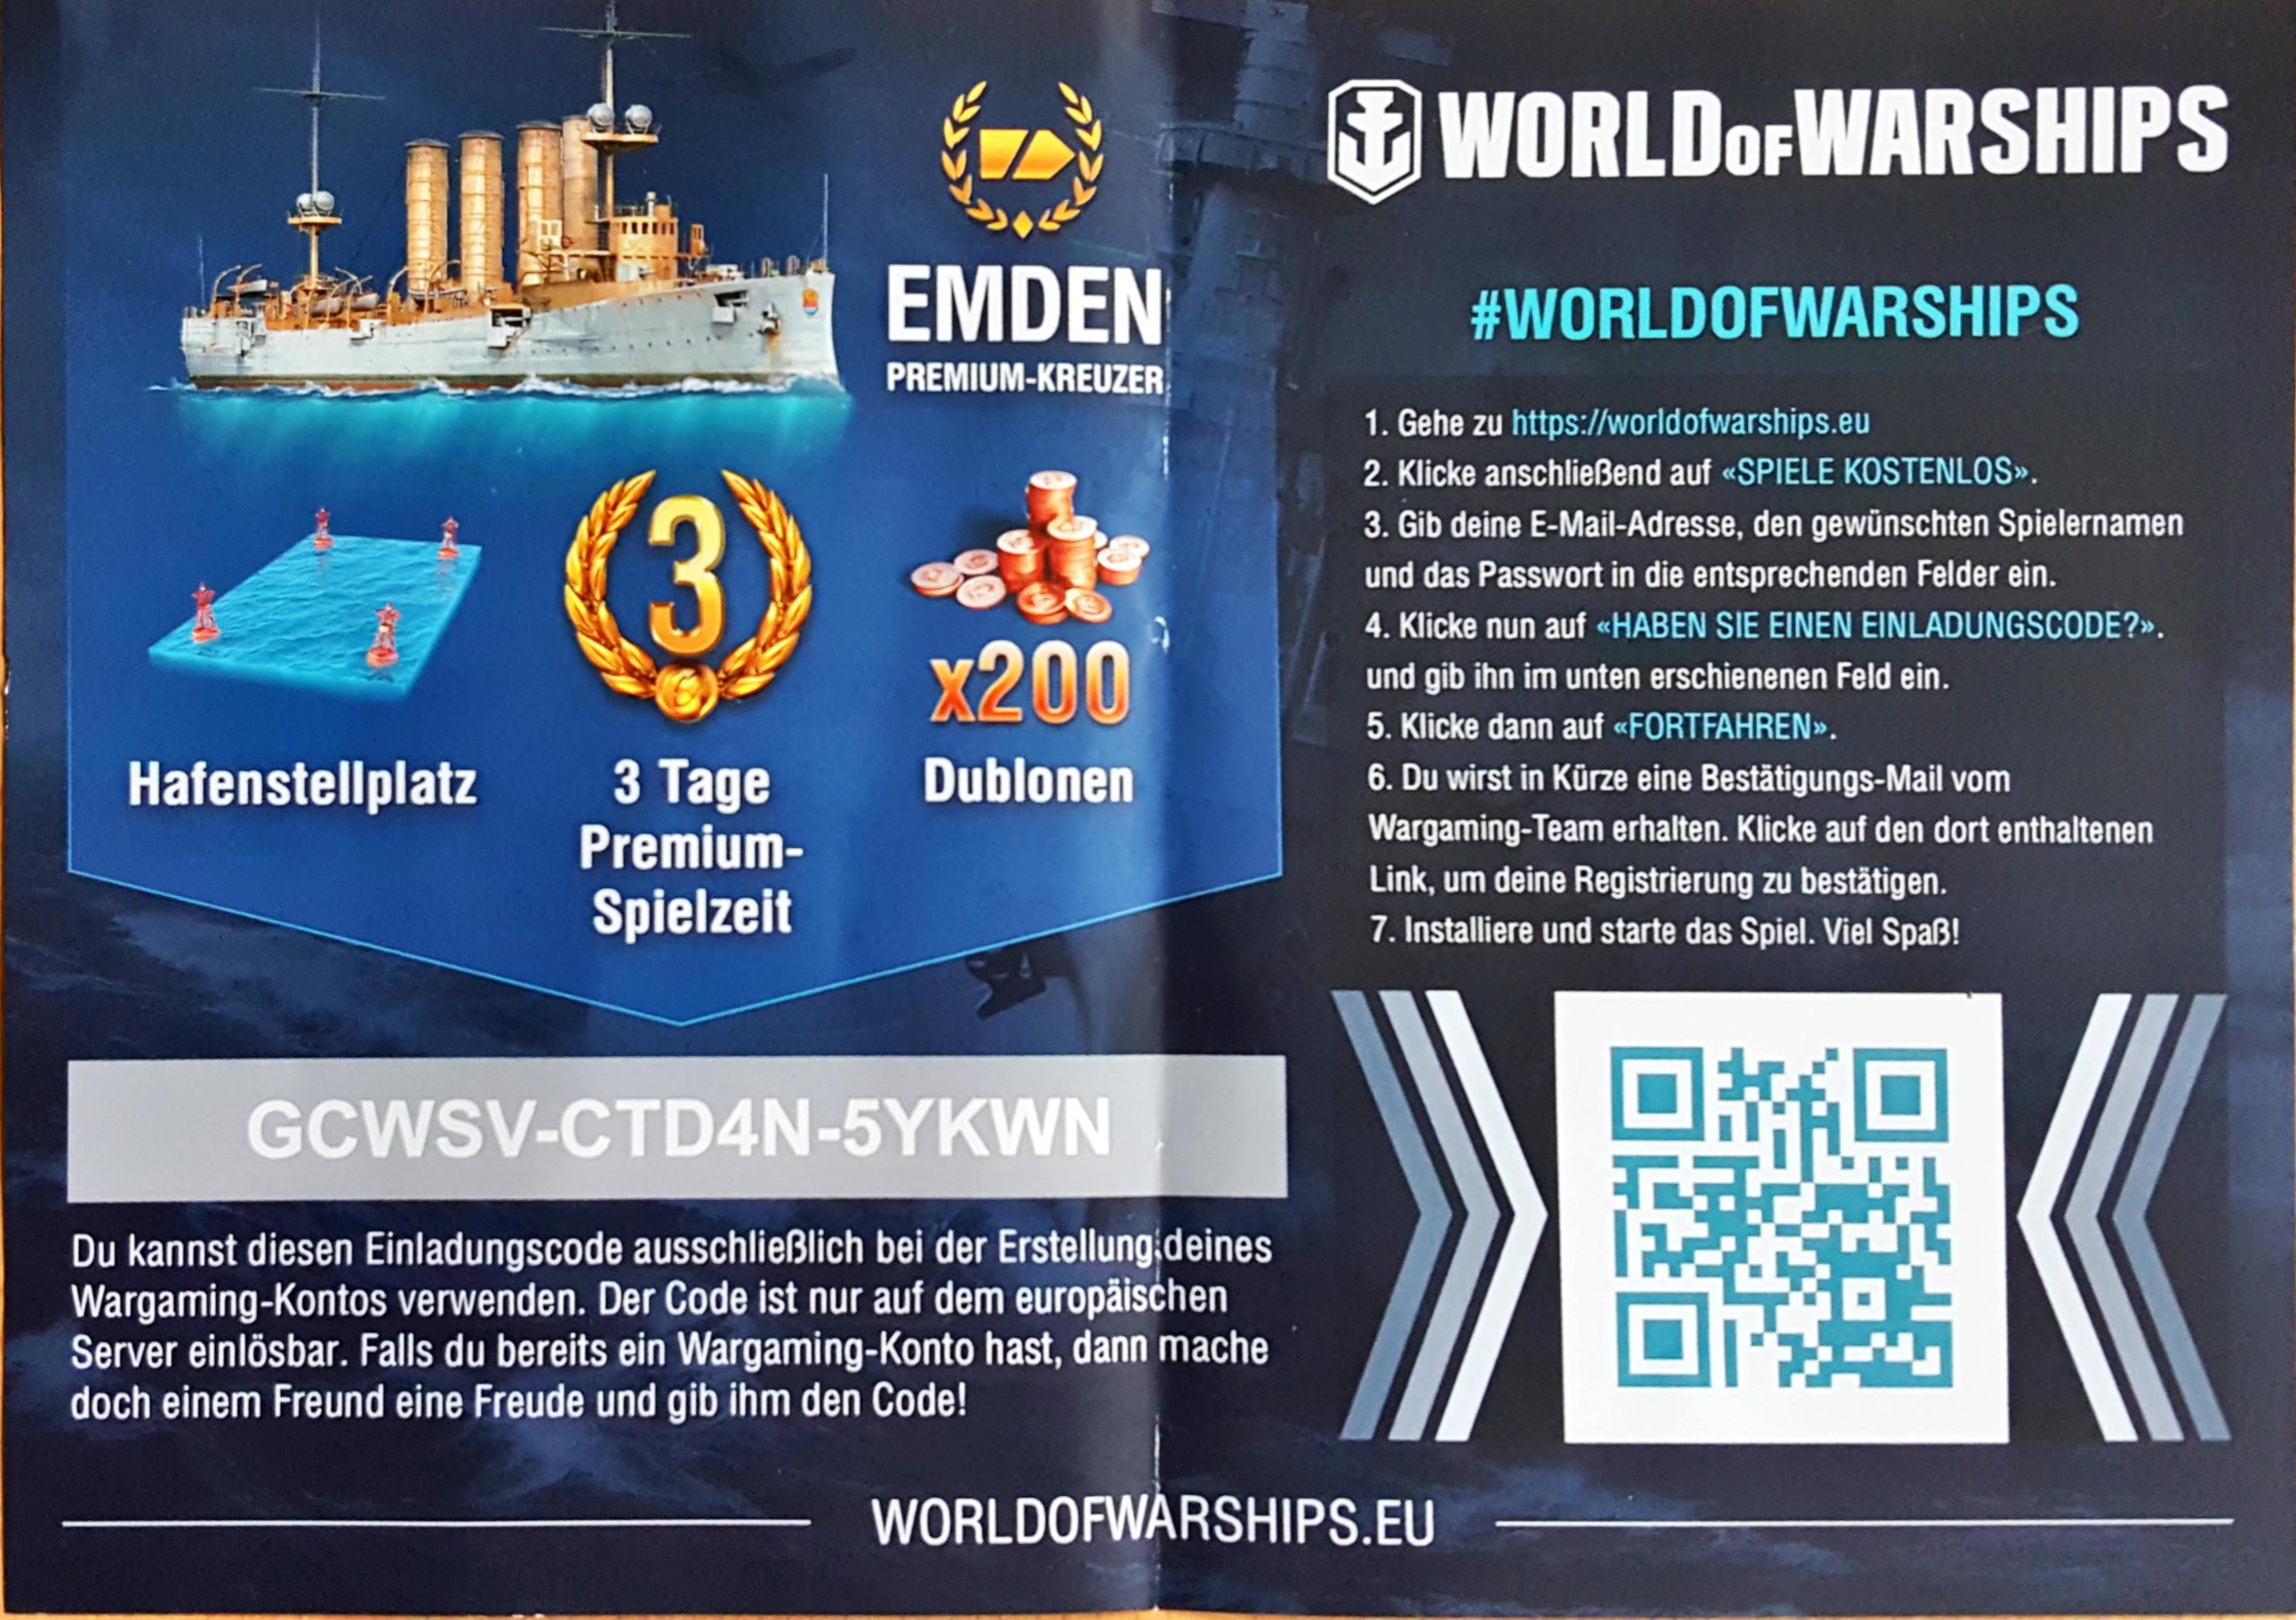 WoWS Gamescom Invite Codes – The Armored Patrol